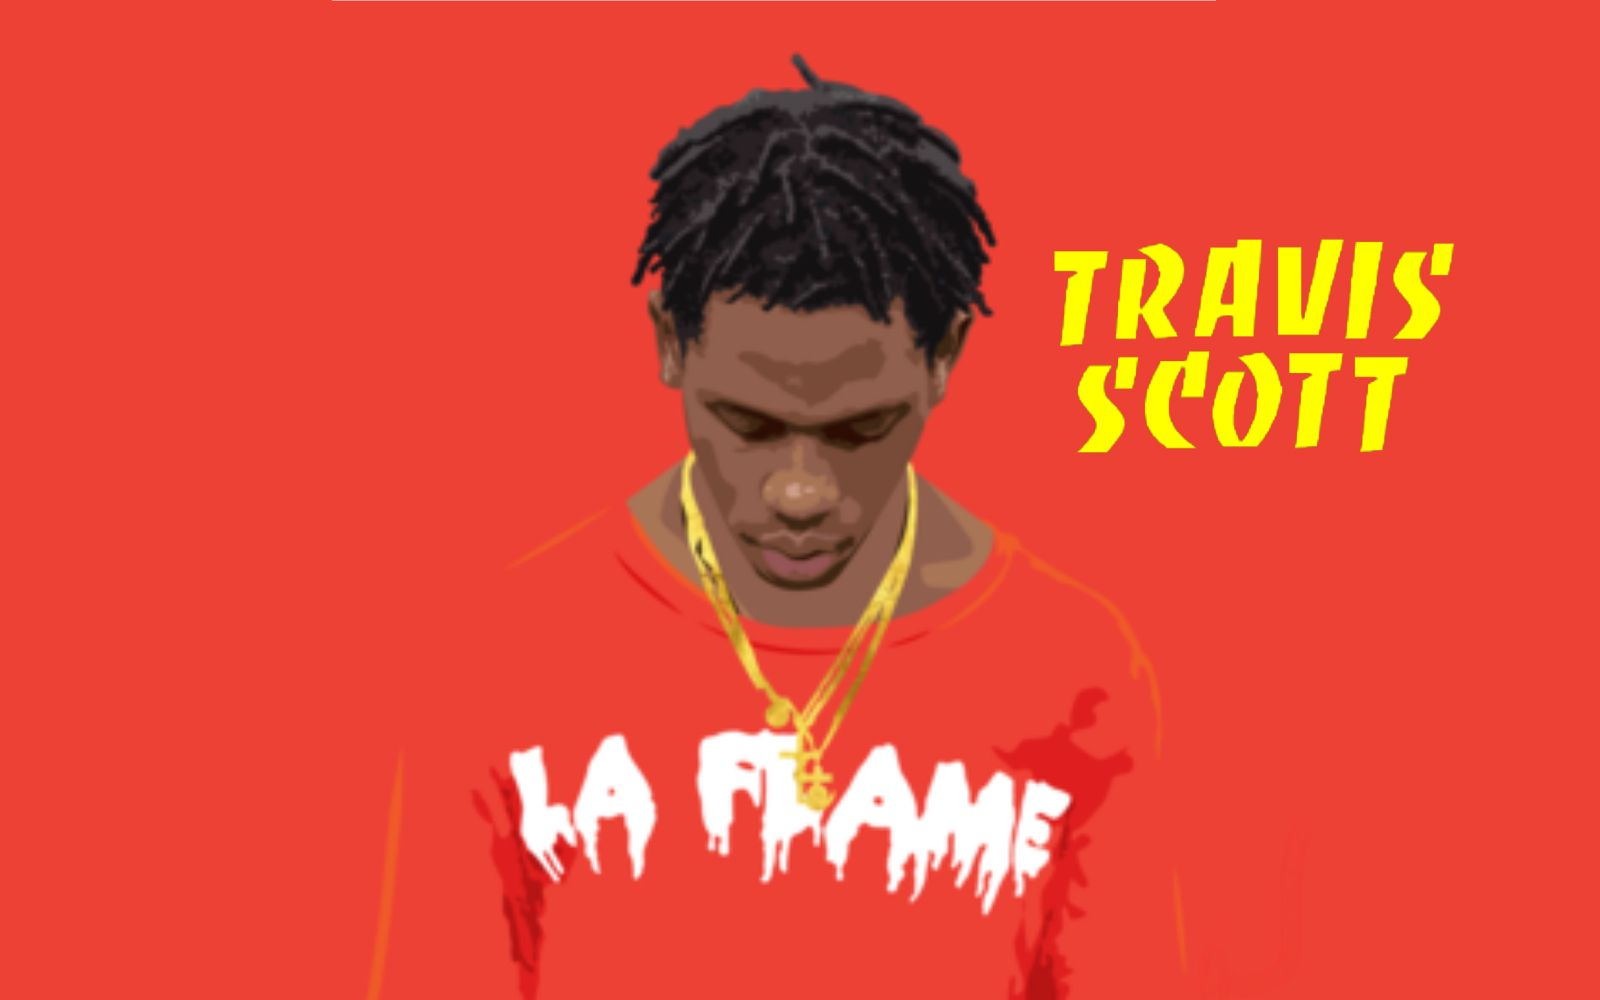 travis scott wallpaper desktop